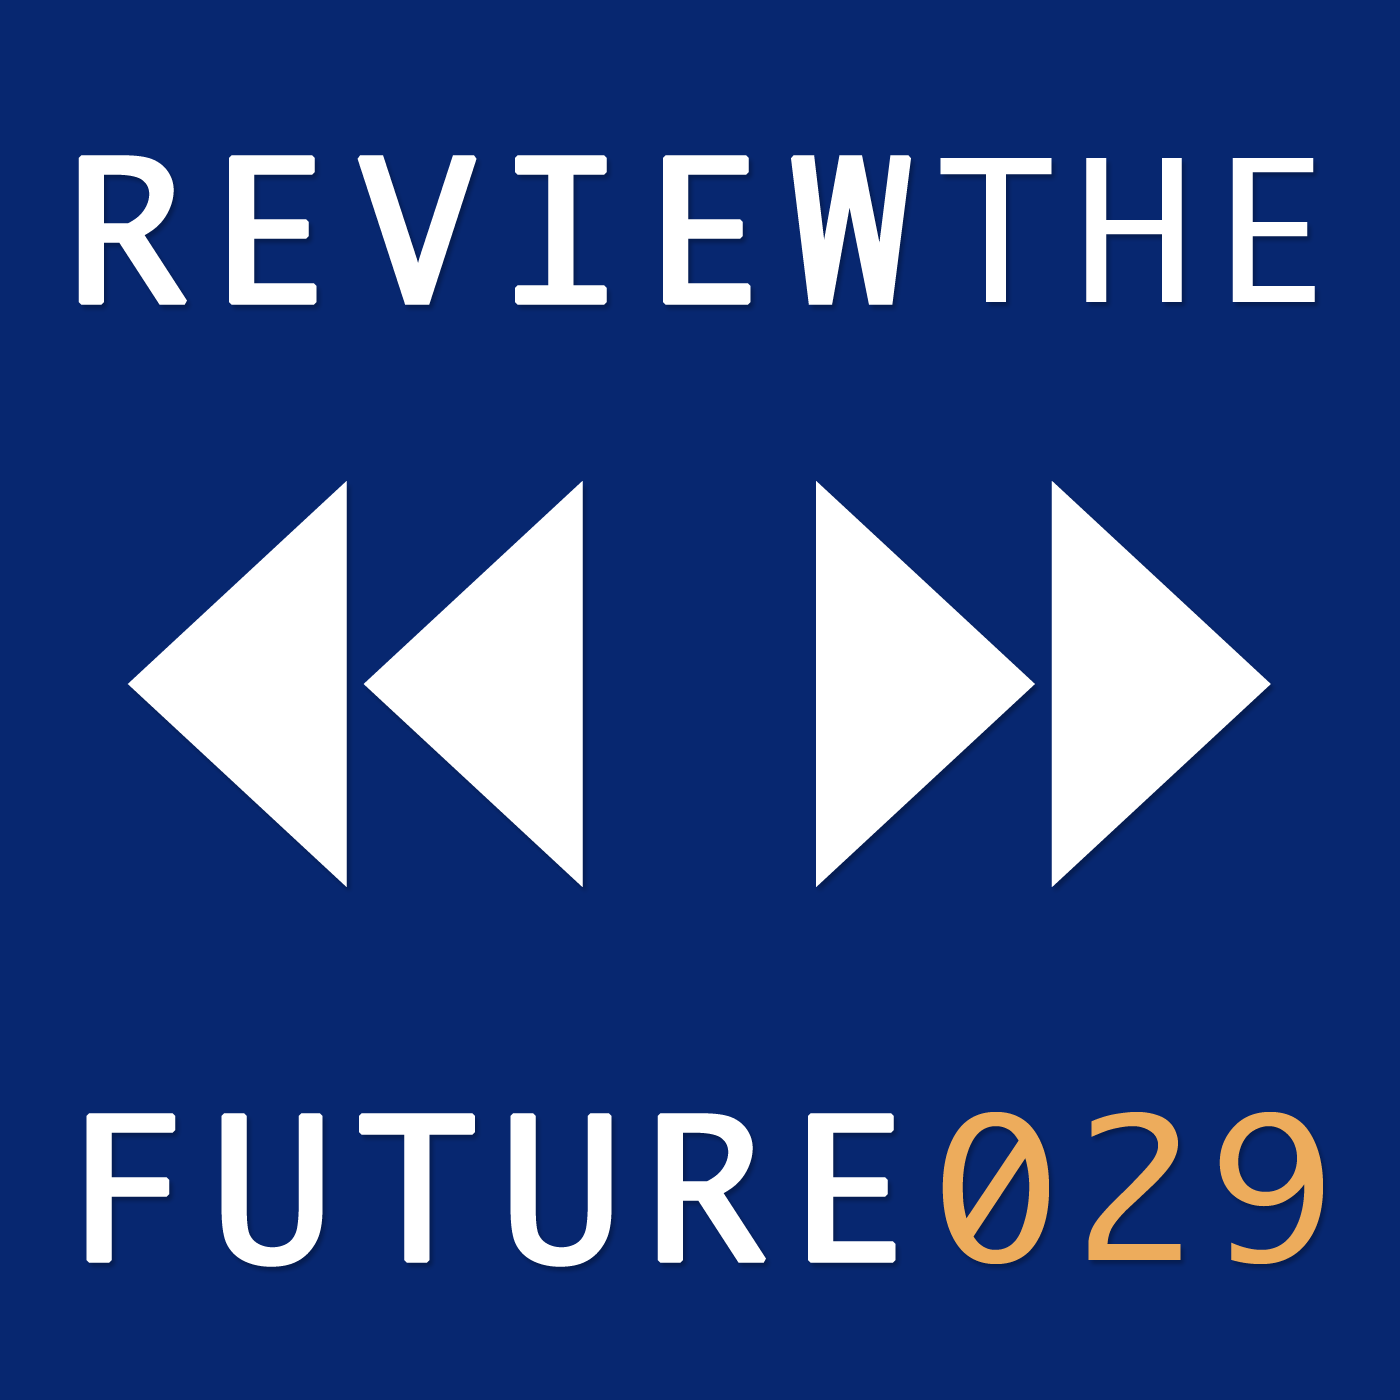 029: What is Mind Uploading? | Review The Future